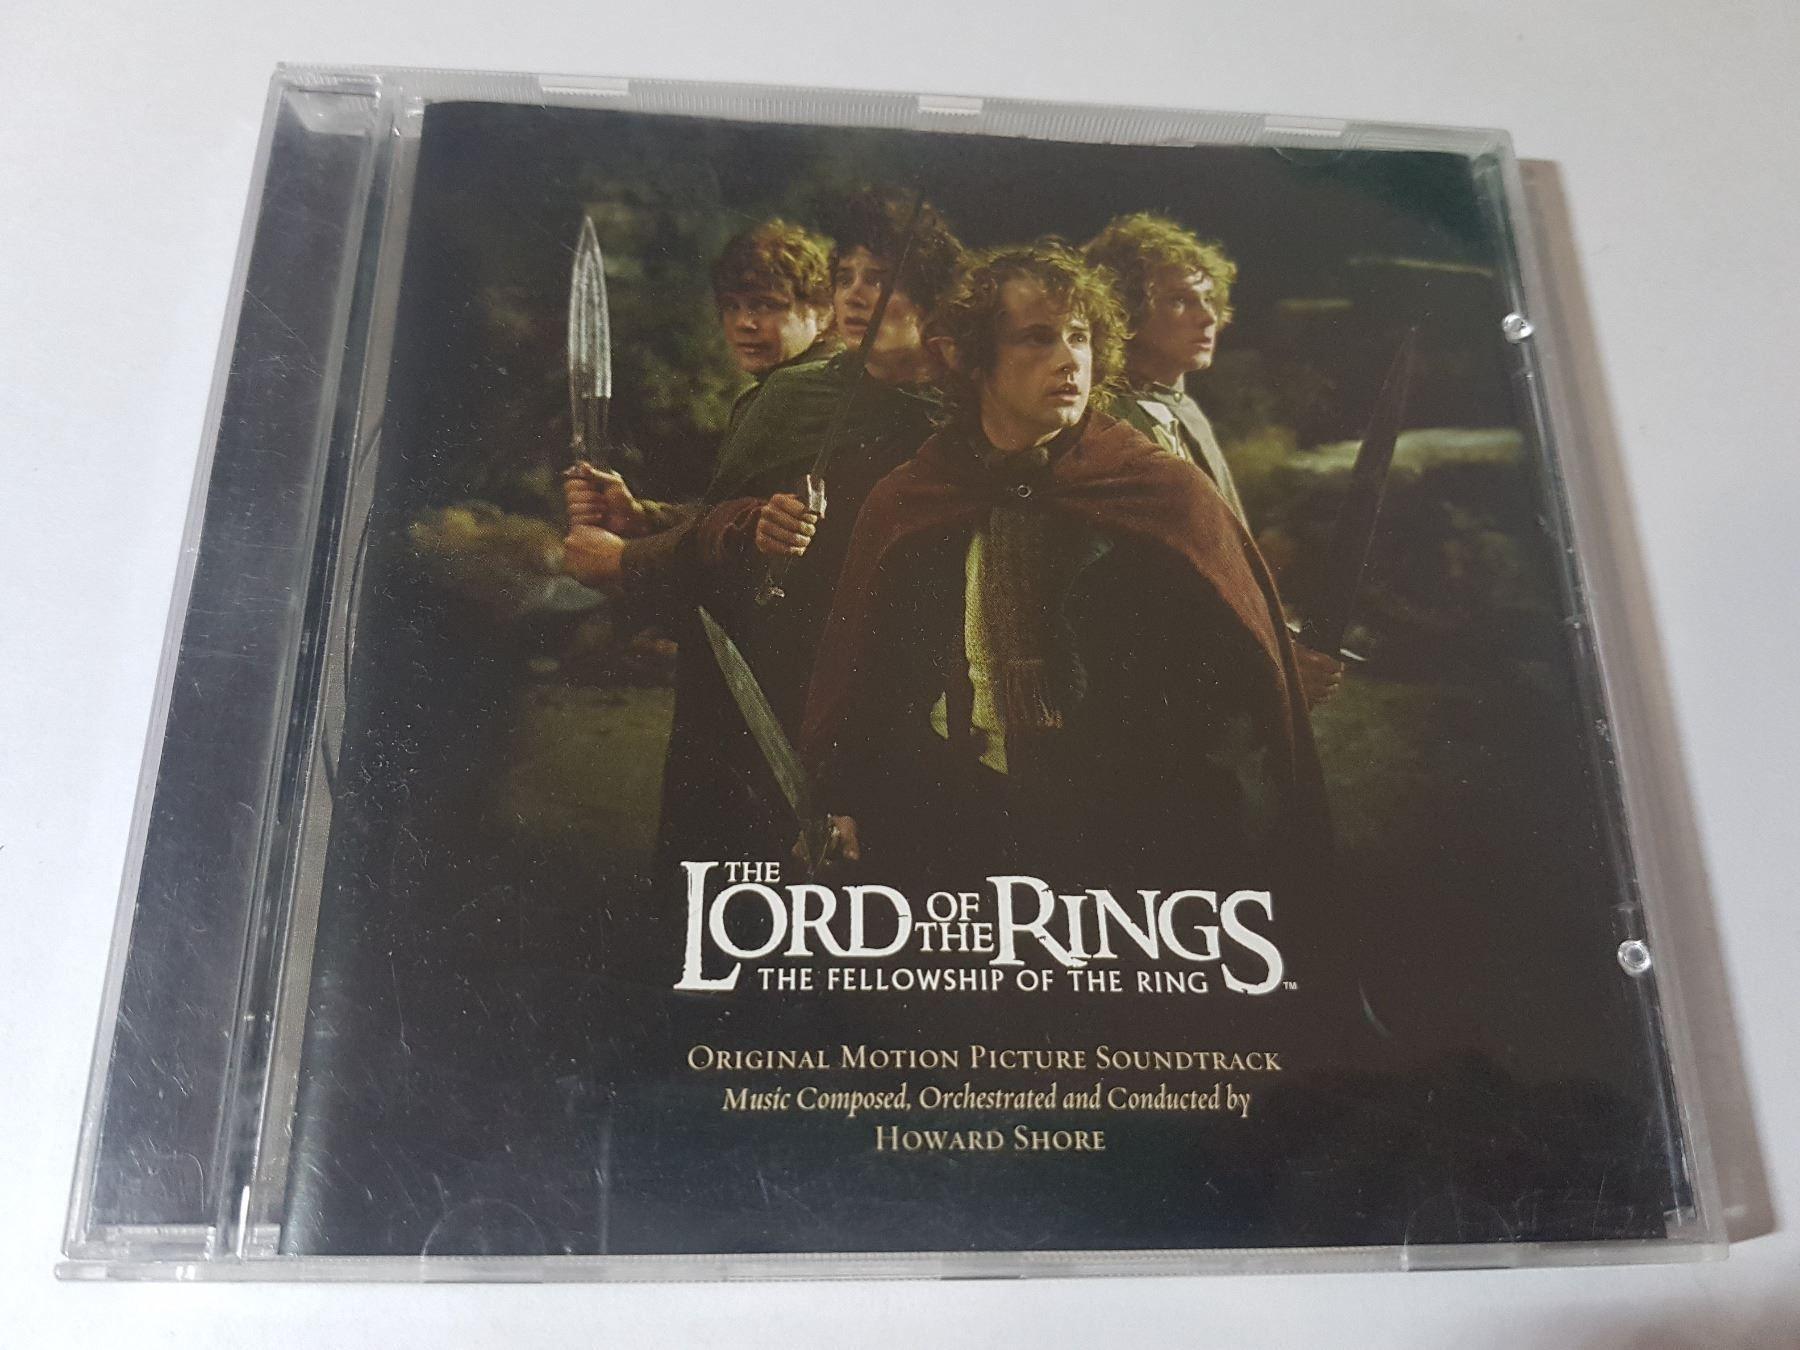 The Fellowship of the Ring Soundtrack CD